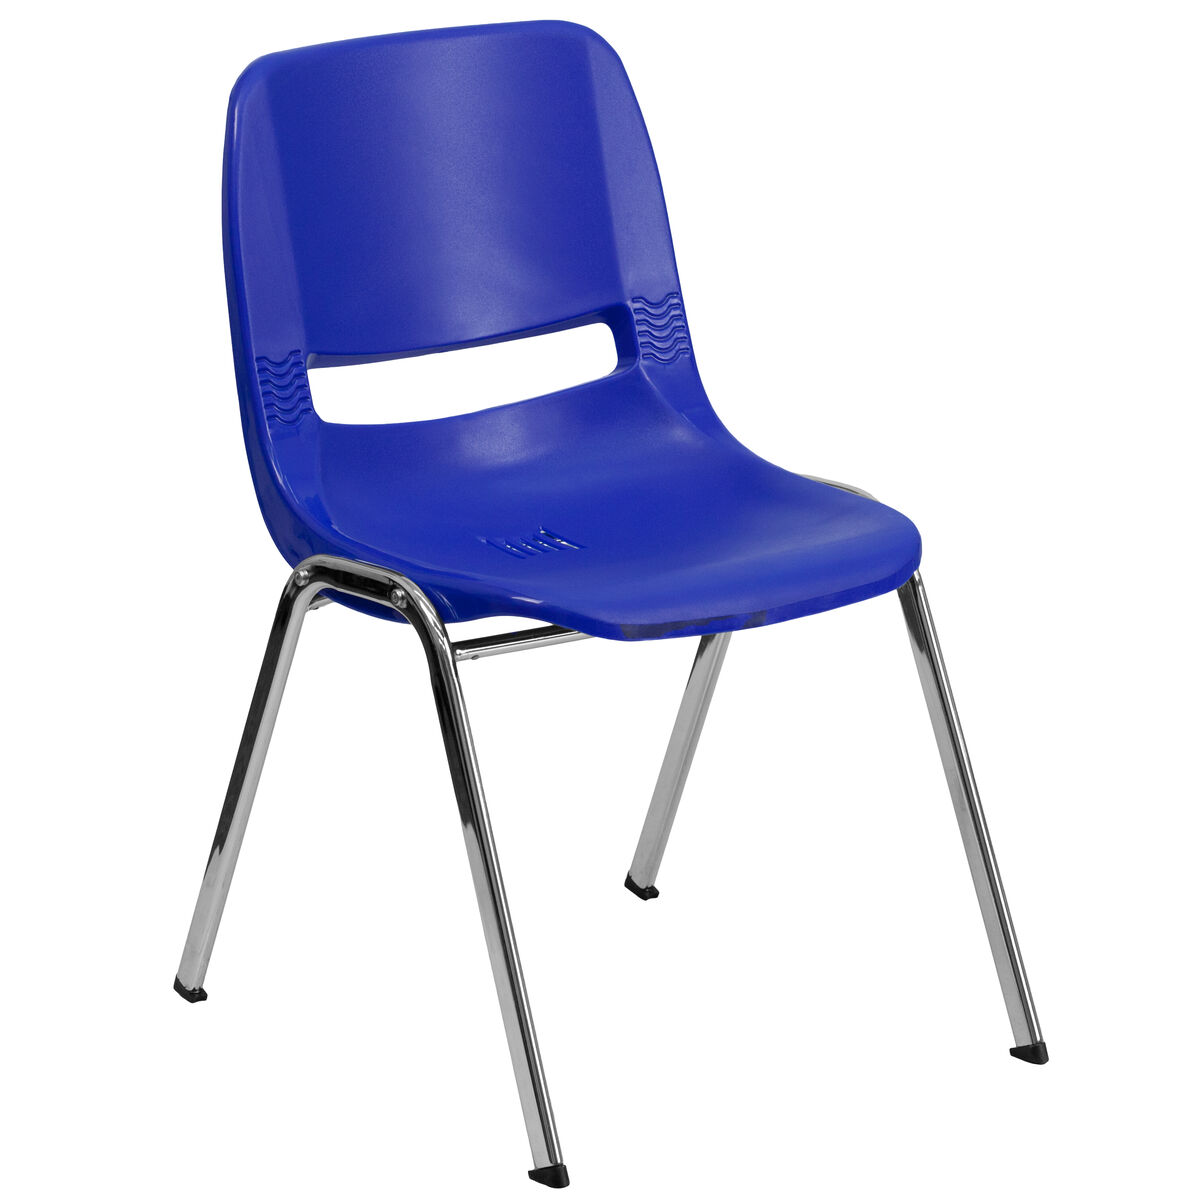 Tobago Stacking Chair Brown Chrome: Navy Plastic Stack Chair RUT-18-NVY-CHR-GG